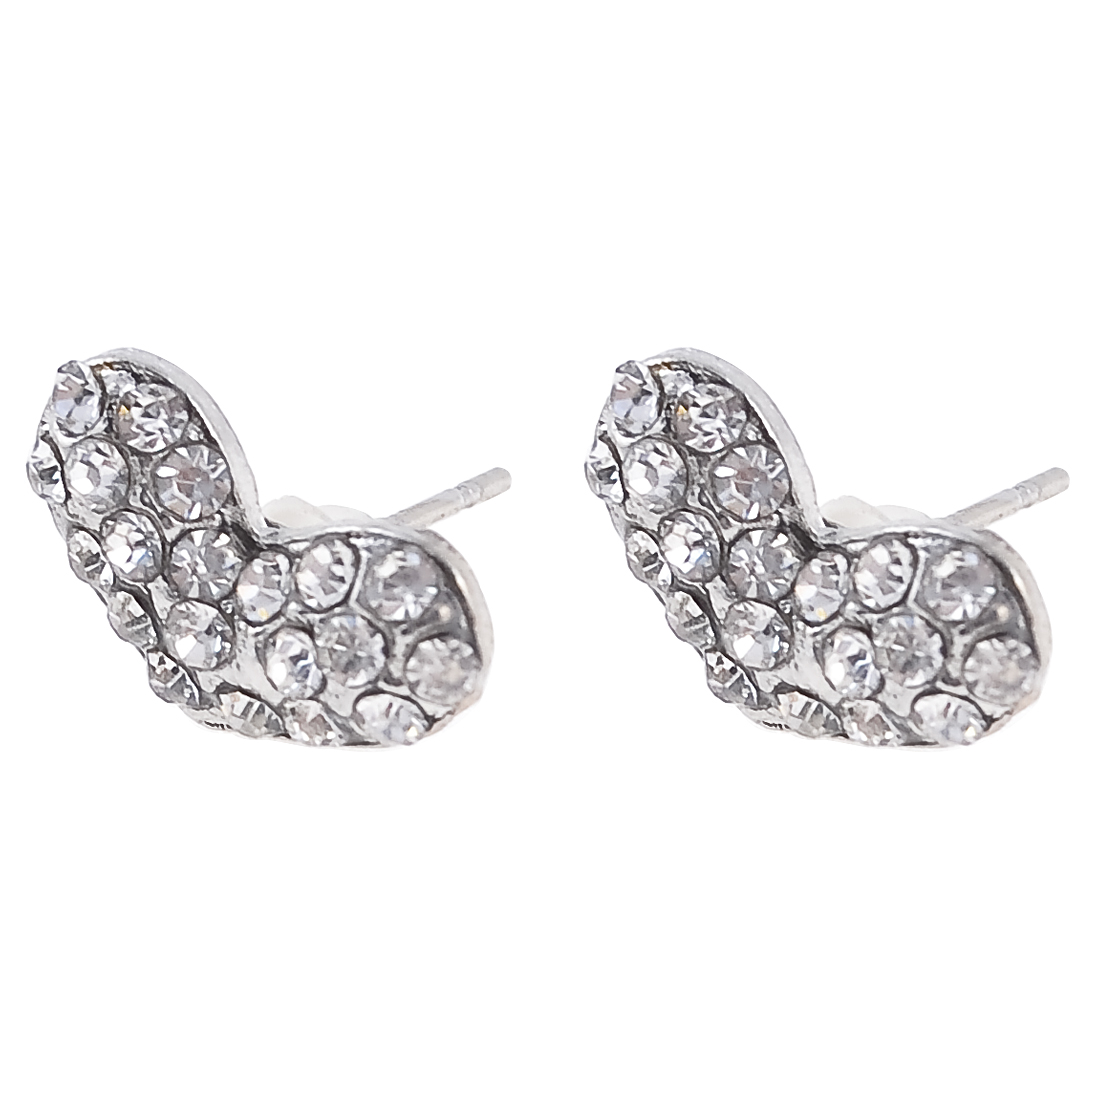 2 Pcs Rhinestone Inlaid Heart Shape Ear Stud Earrings Silver Tone for Women